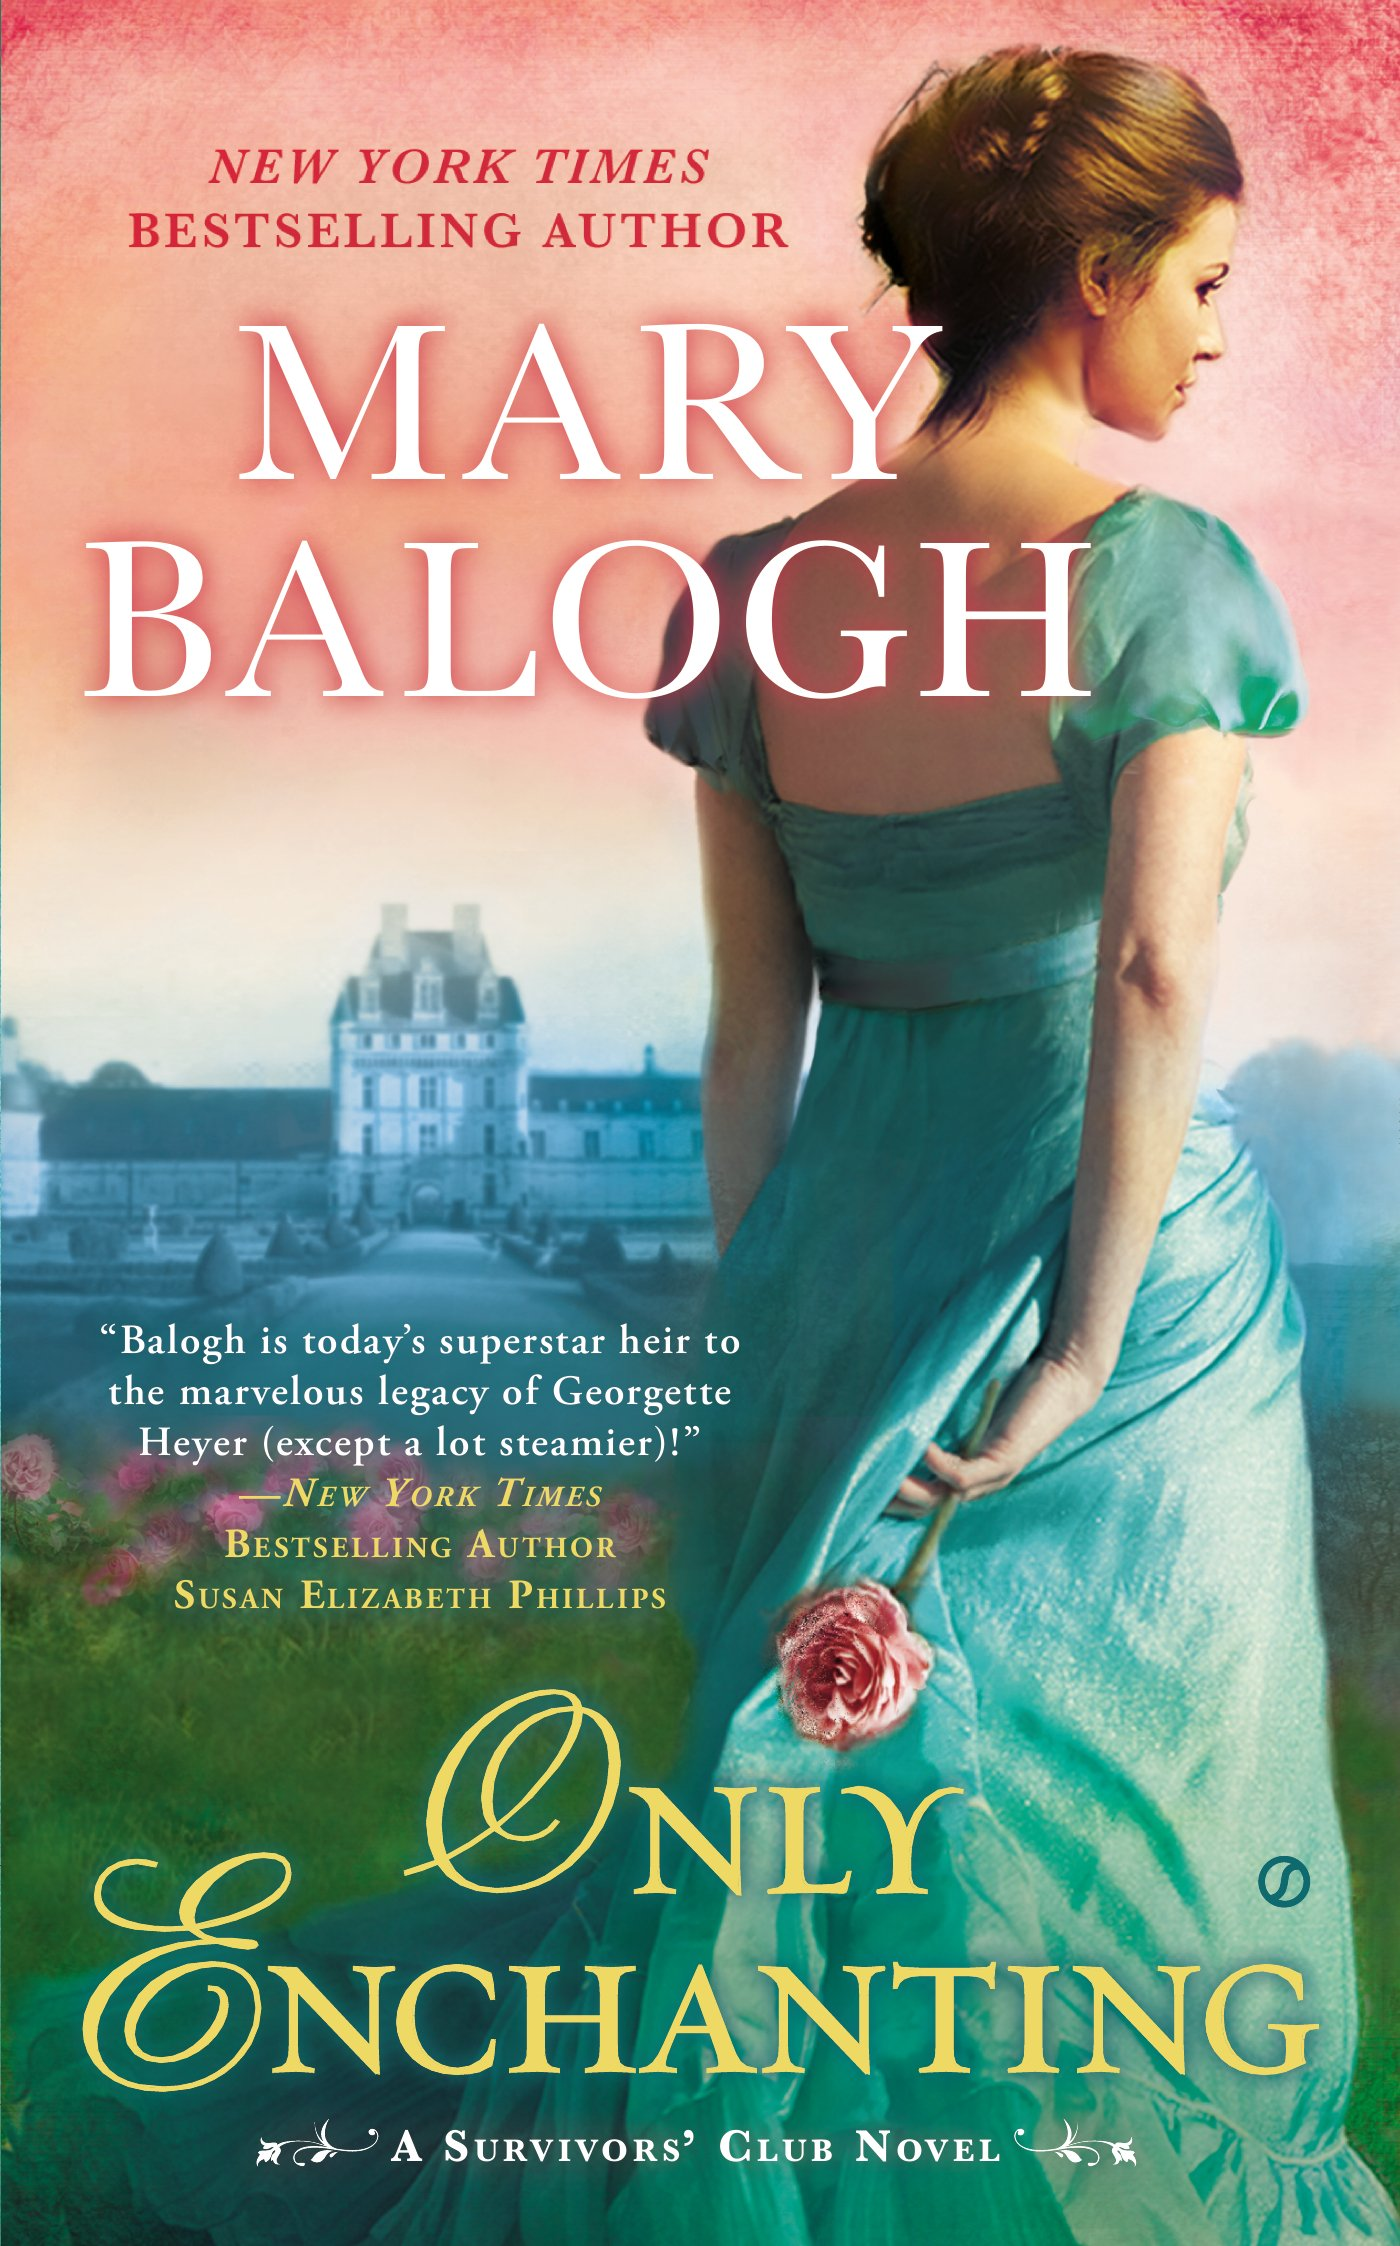 Only Enchanting (Survivor's Club)  - Mary Balogh